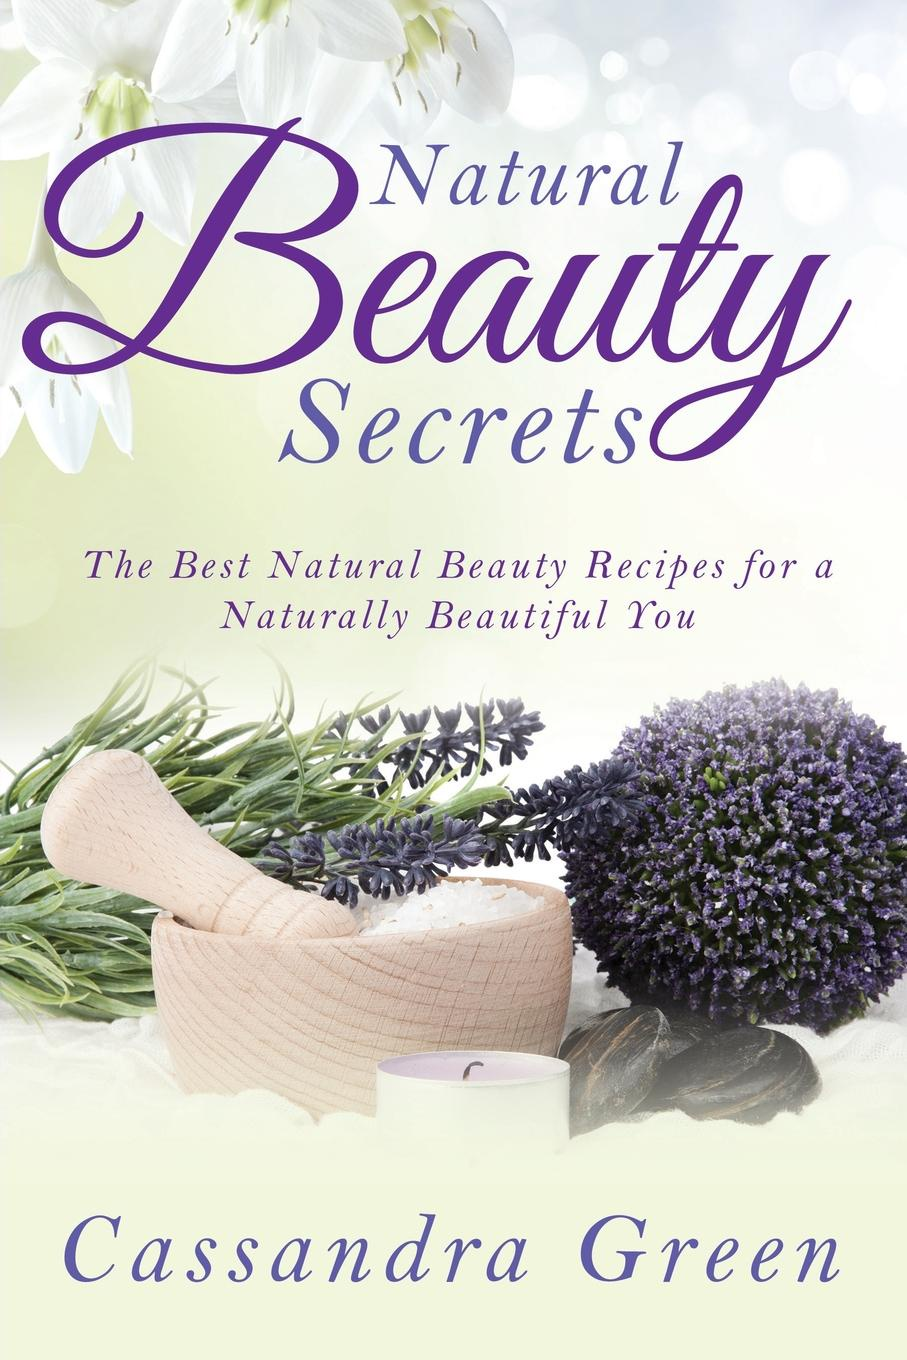 Cassandra Green Natural Beauty Secrets. The Best Recipes for a Naturally Beautiful You